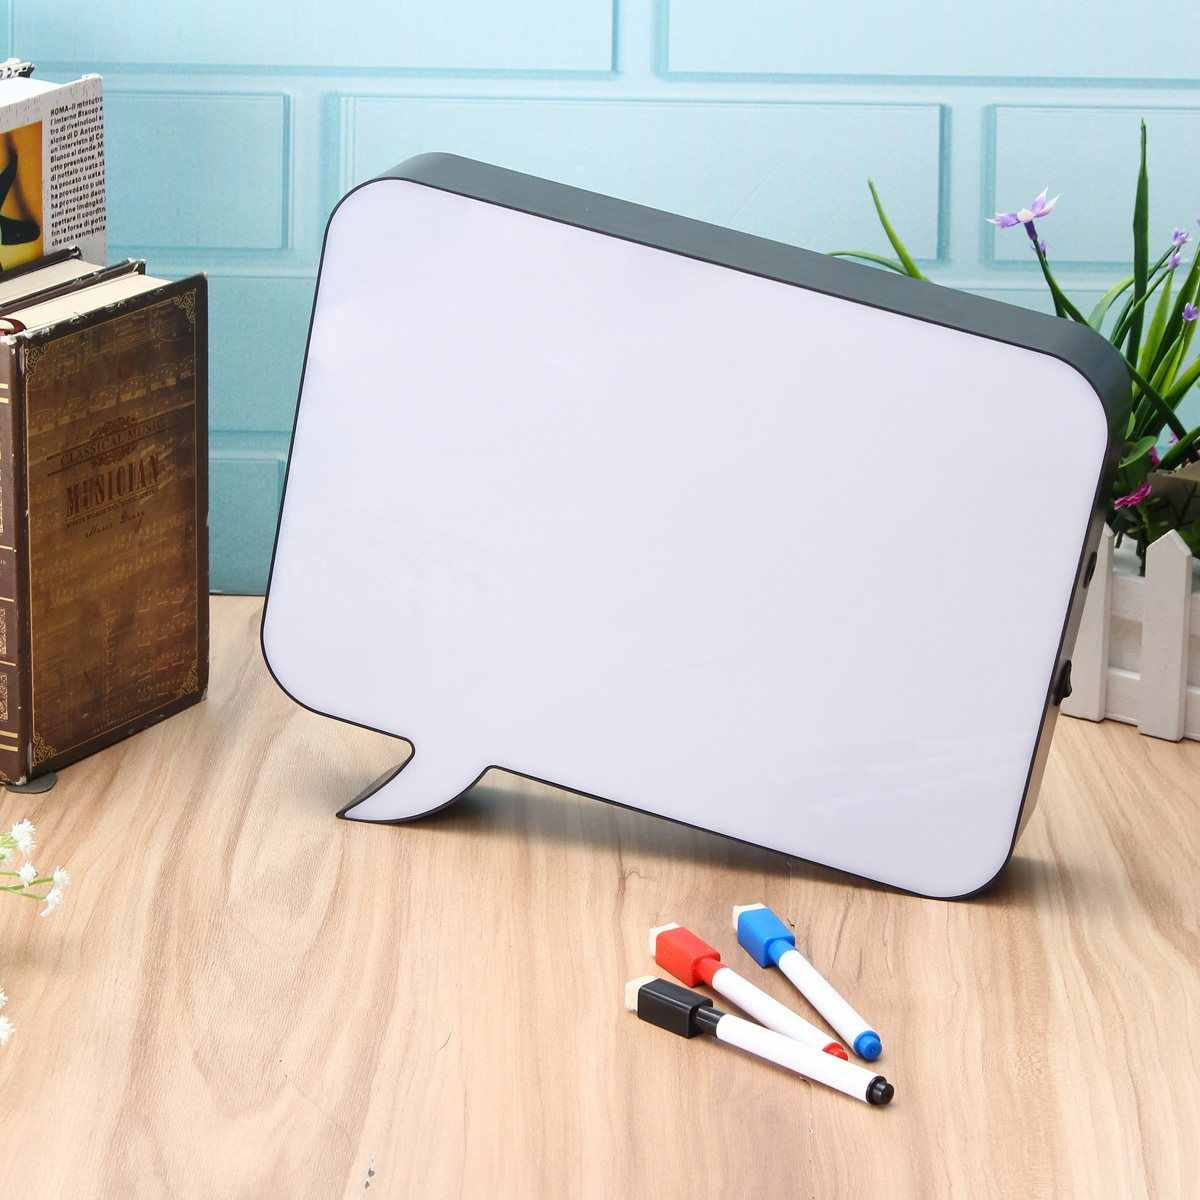 Dialog Shape A4 Rewritable DIY LED Night Light Box With Tri-Color Erasable Pen For Gift Interior Decoration Night Table Lamp